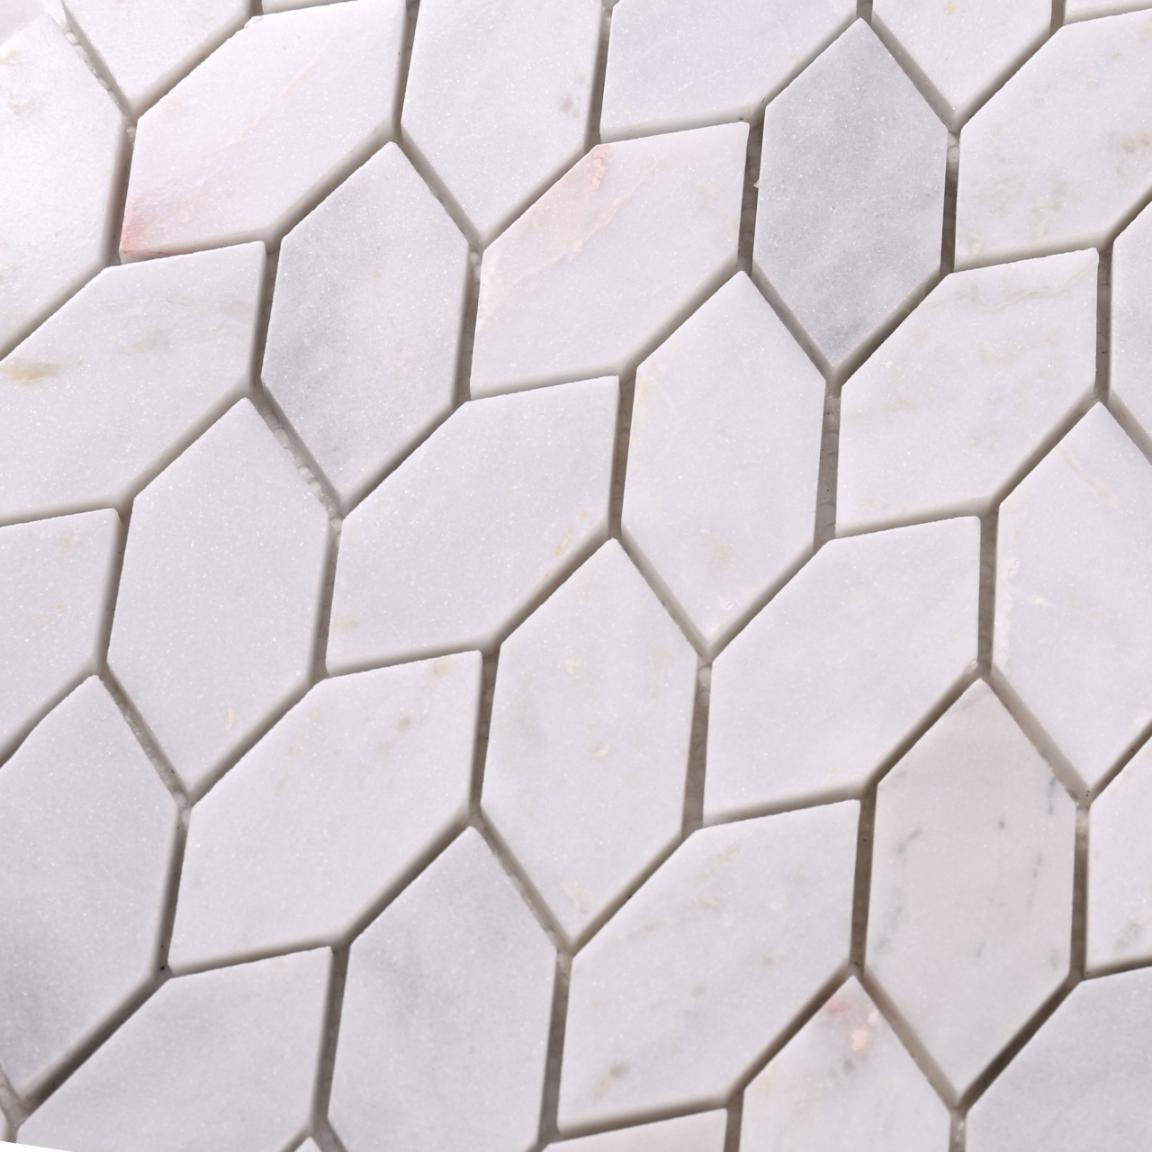 Heng Xing stone mosaic tile art for business for backsplash-Heng Xing-img-1